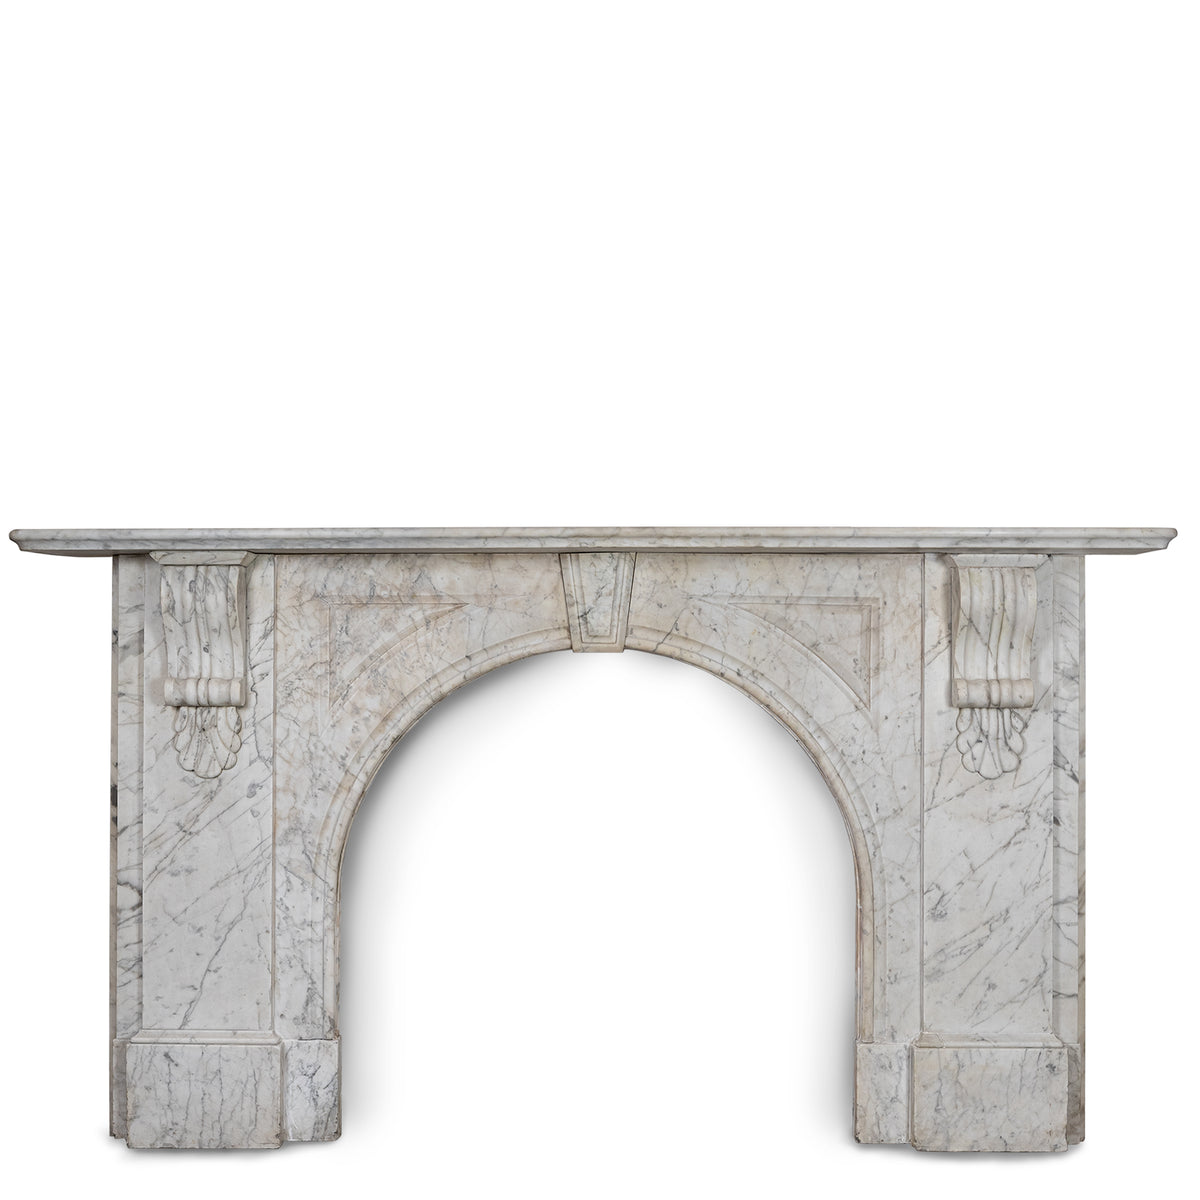 Large Antique Victorian Carrara Marble Arched Chimneypiece | The Architectural Forum